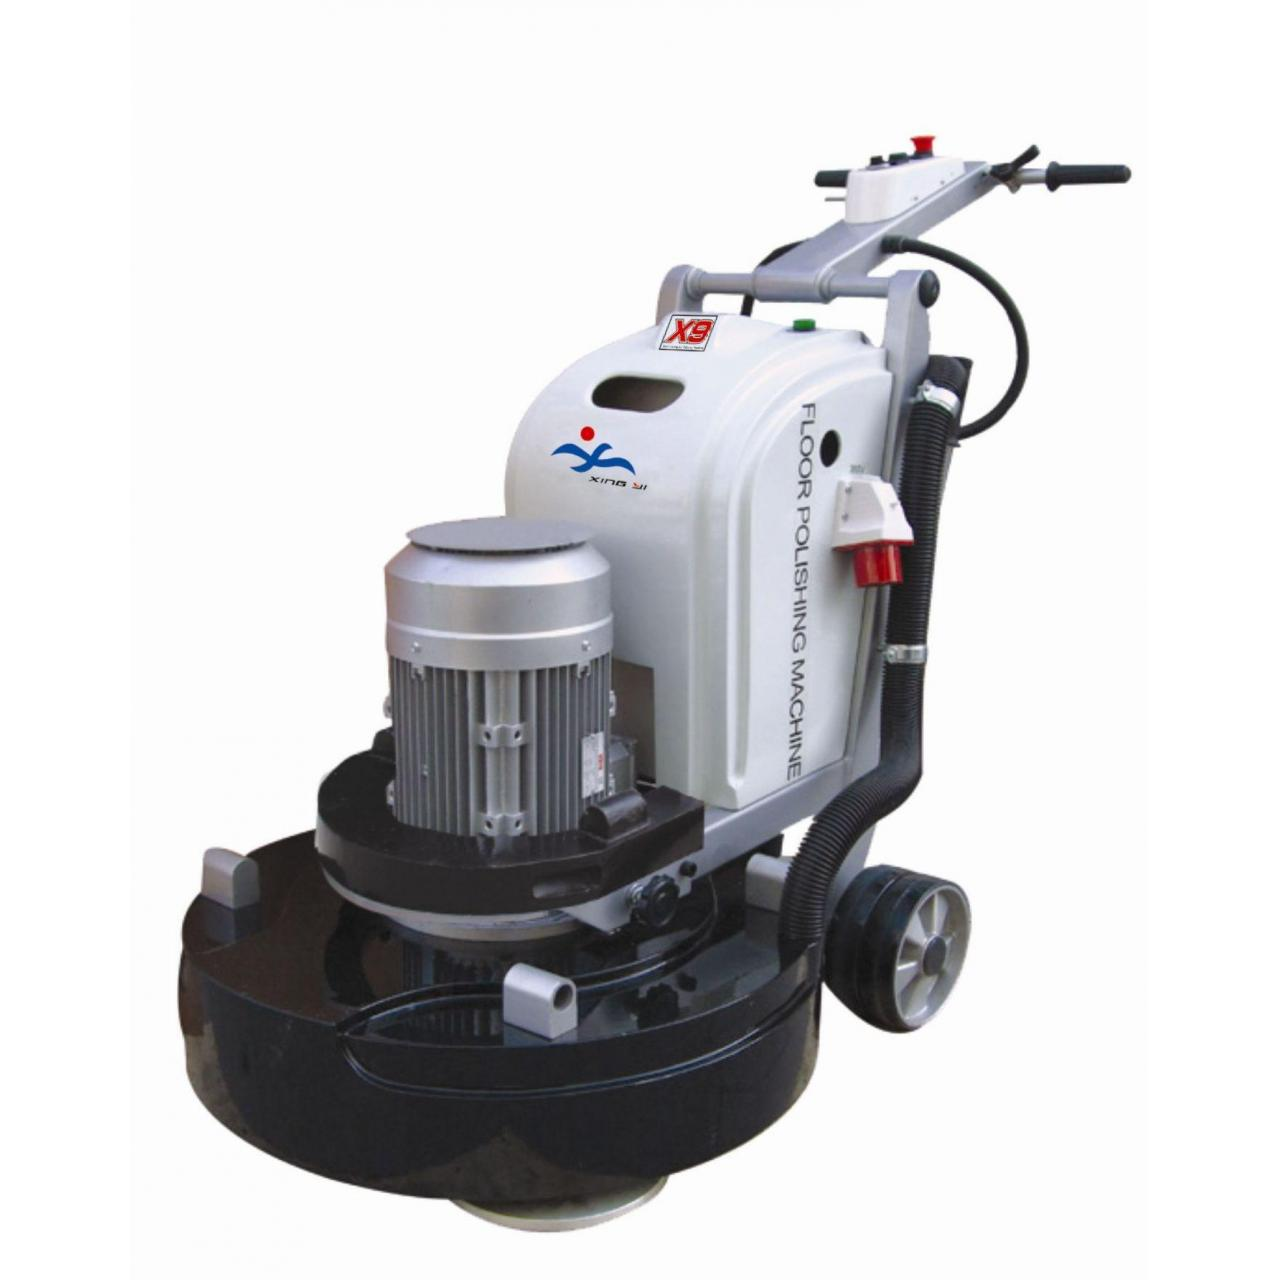 Buy cheap X9 concrete floor grinding machine from wholesalers